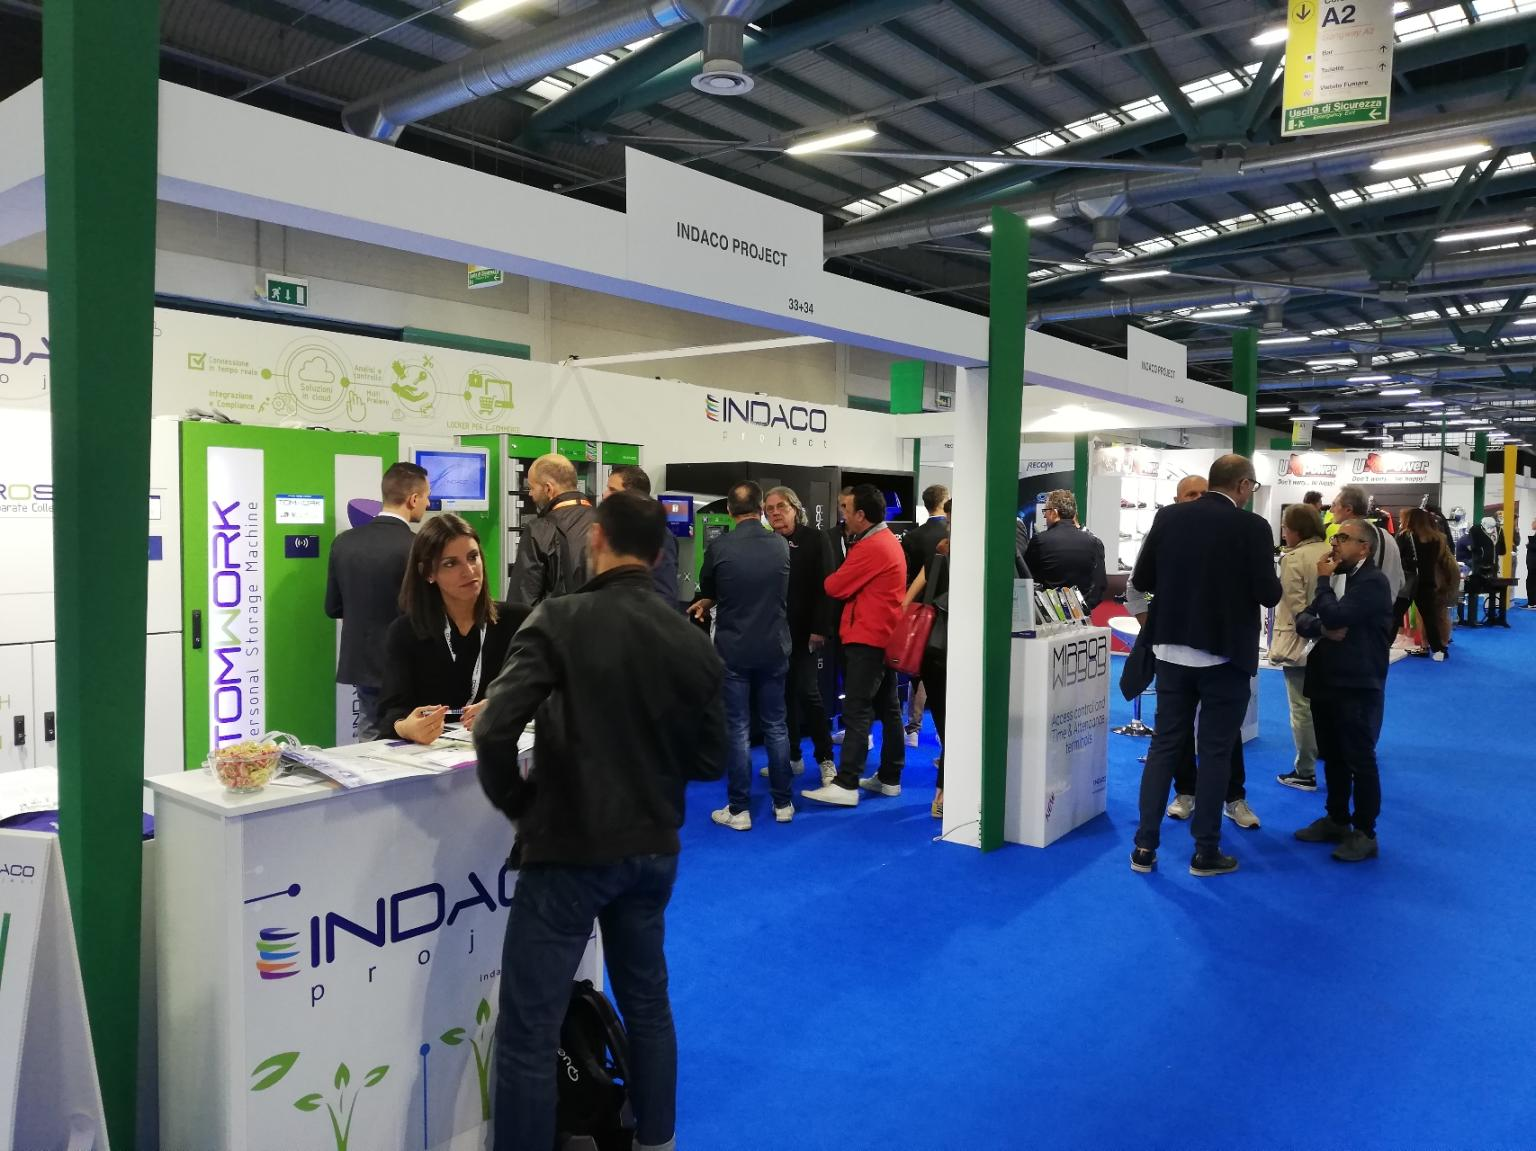 Indaco Project al SAFETY EXPO settembre 2019